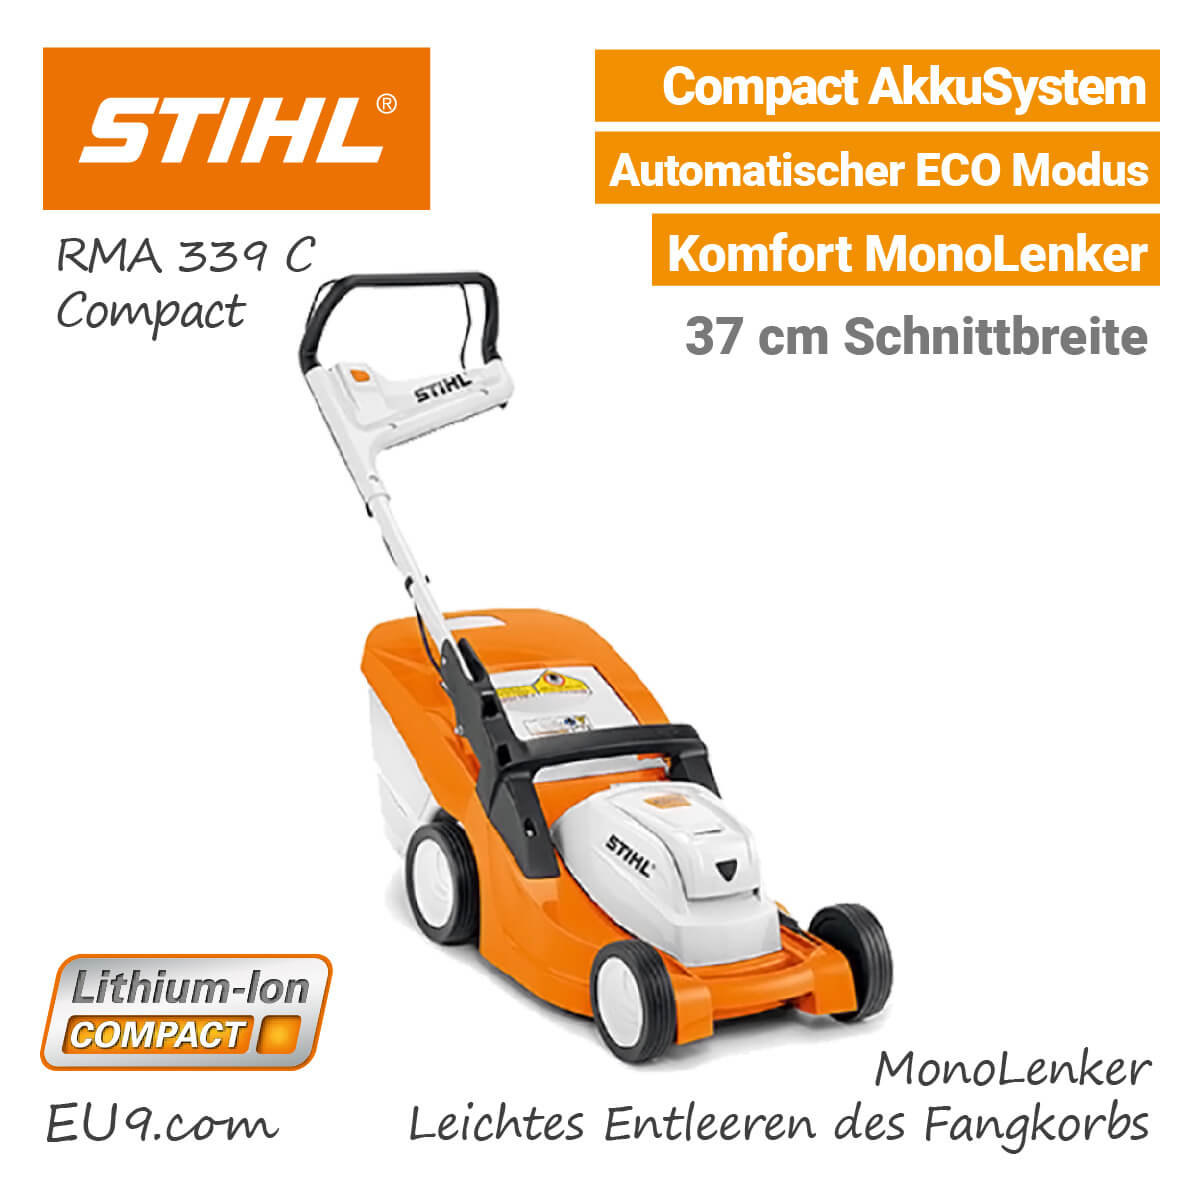 neu 2018 stihl rma 339 c akku rasenm her compact neuheit. Black Bedroom Furniture Sets. Home Design Ideas